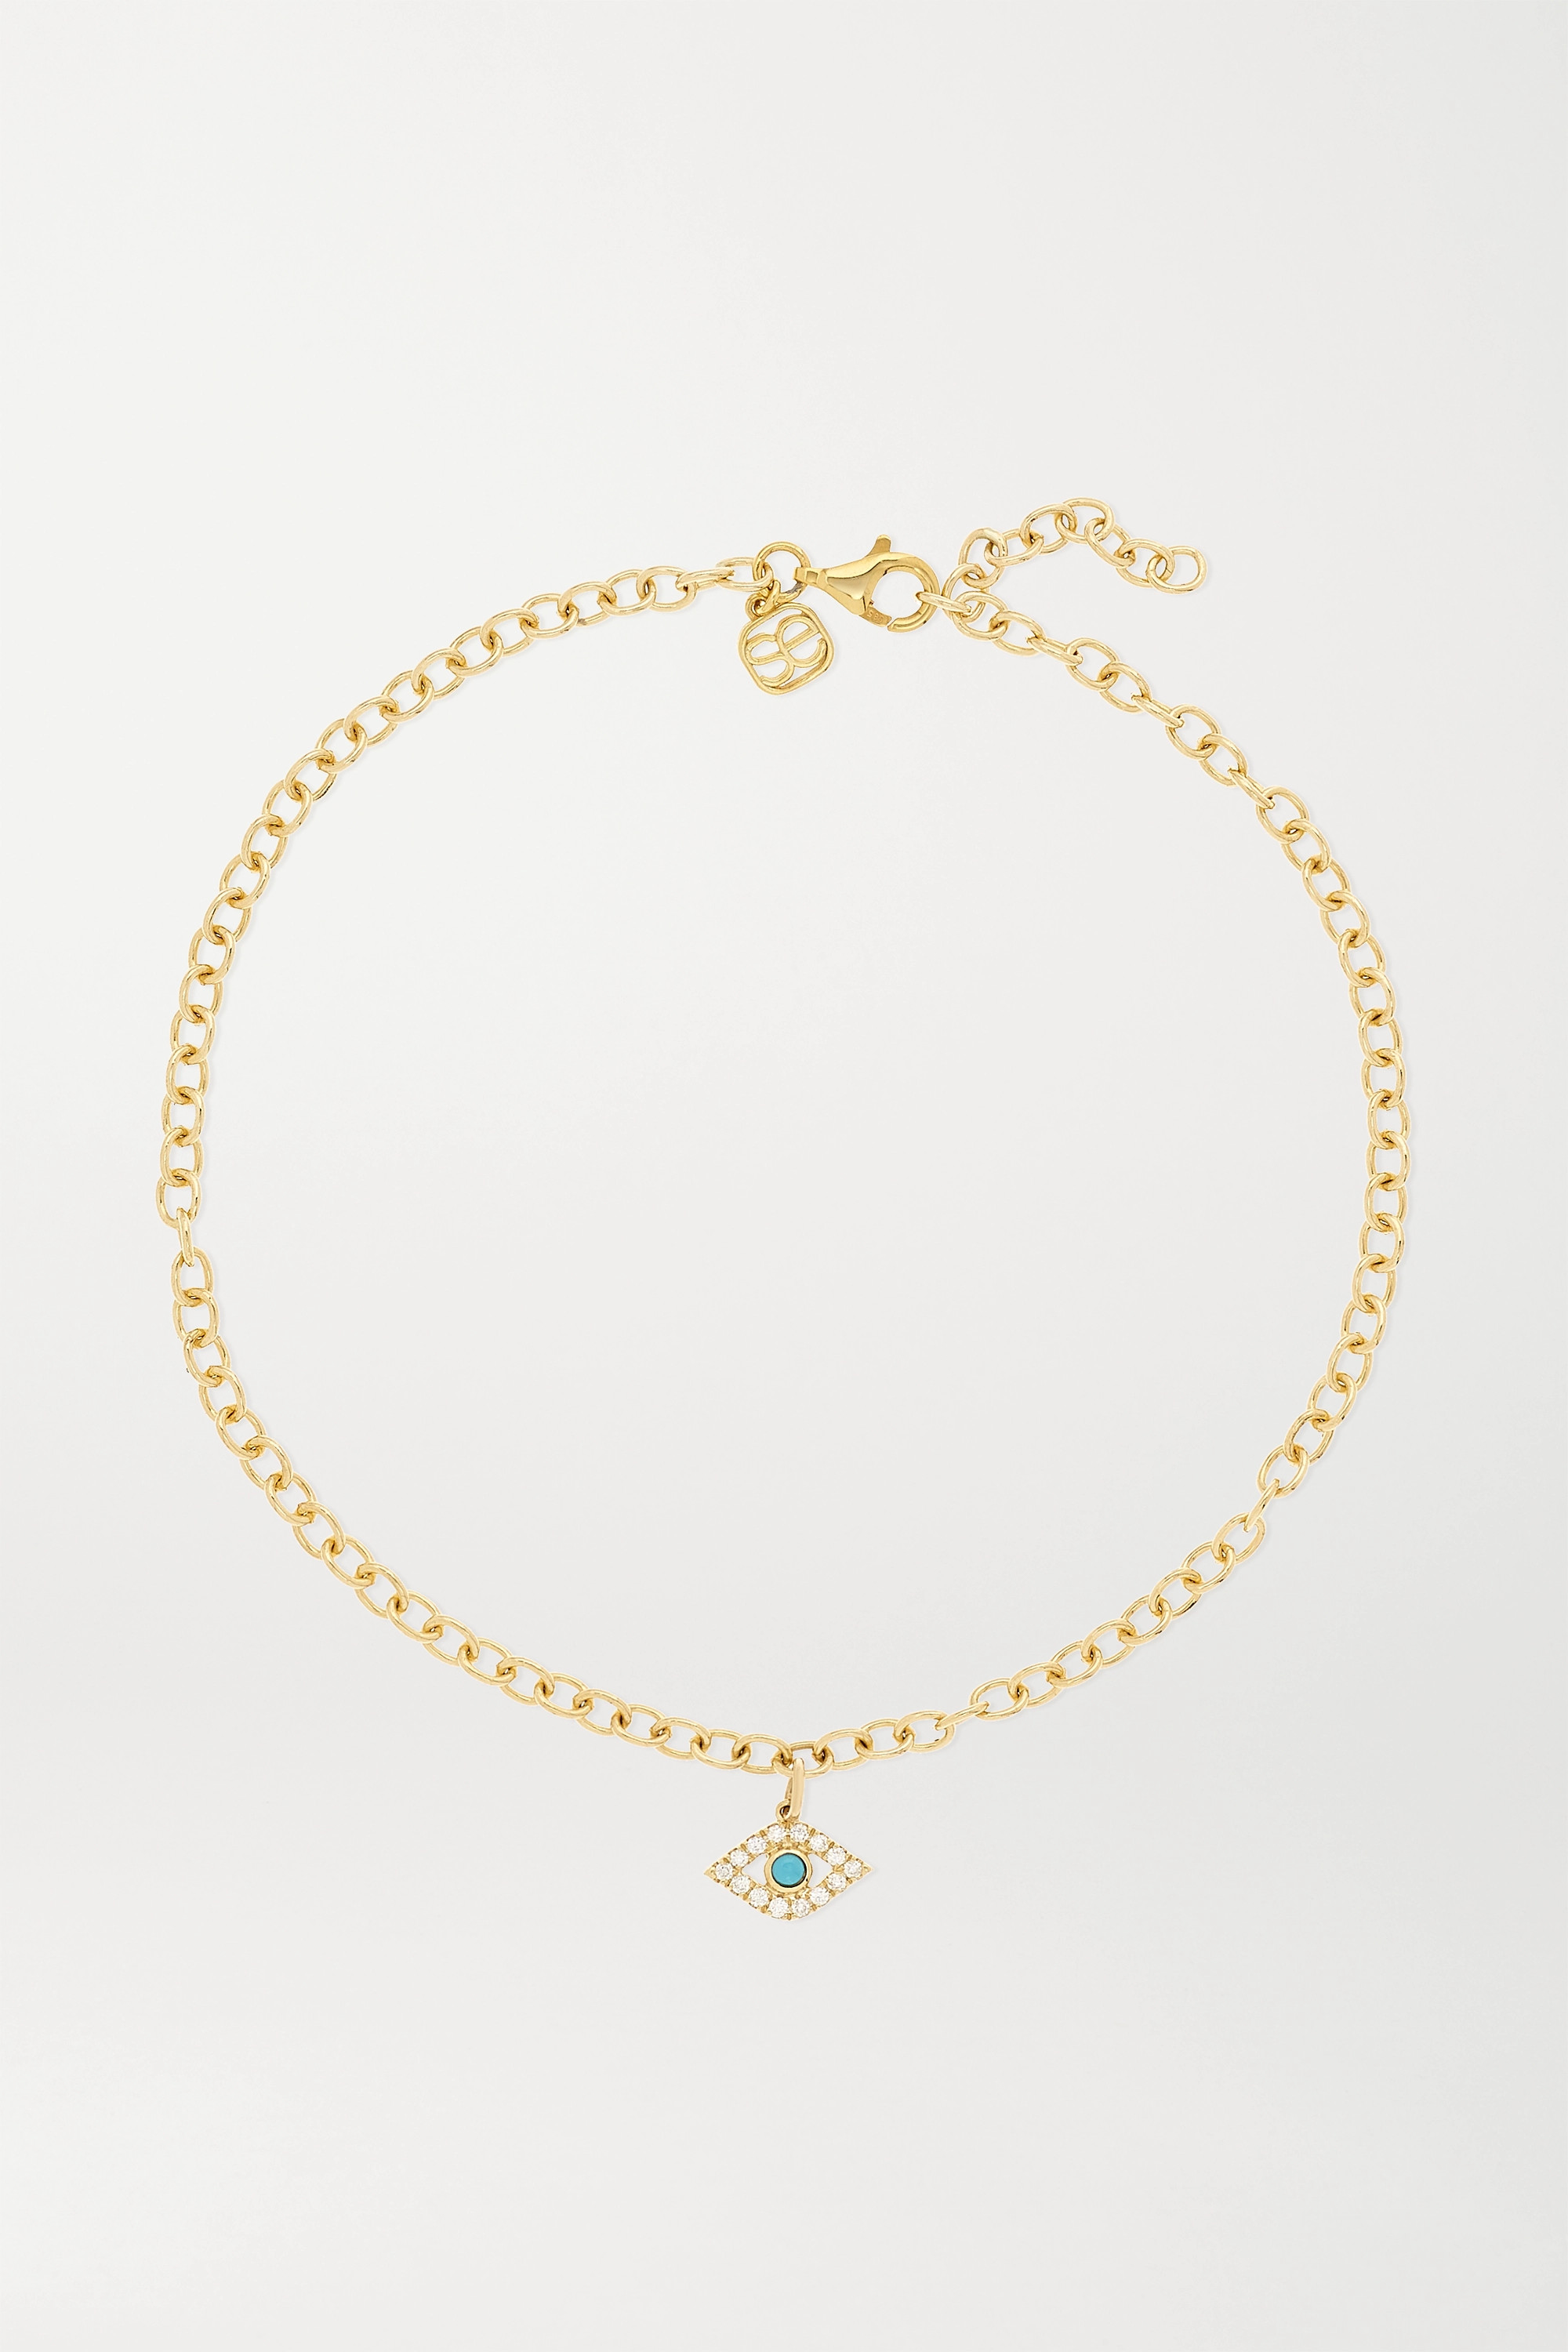 Sydney Evan Large Evil Eye 14-karat gold, diamond and turquoise anklet